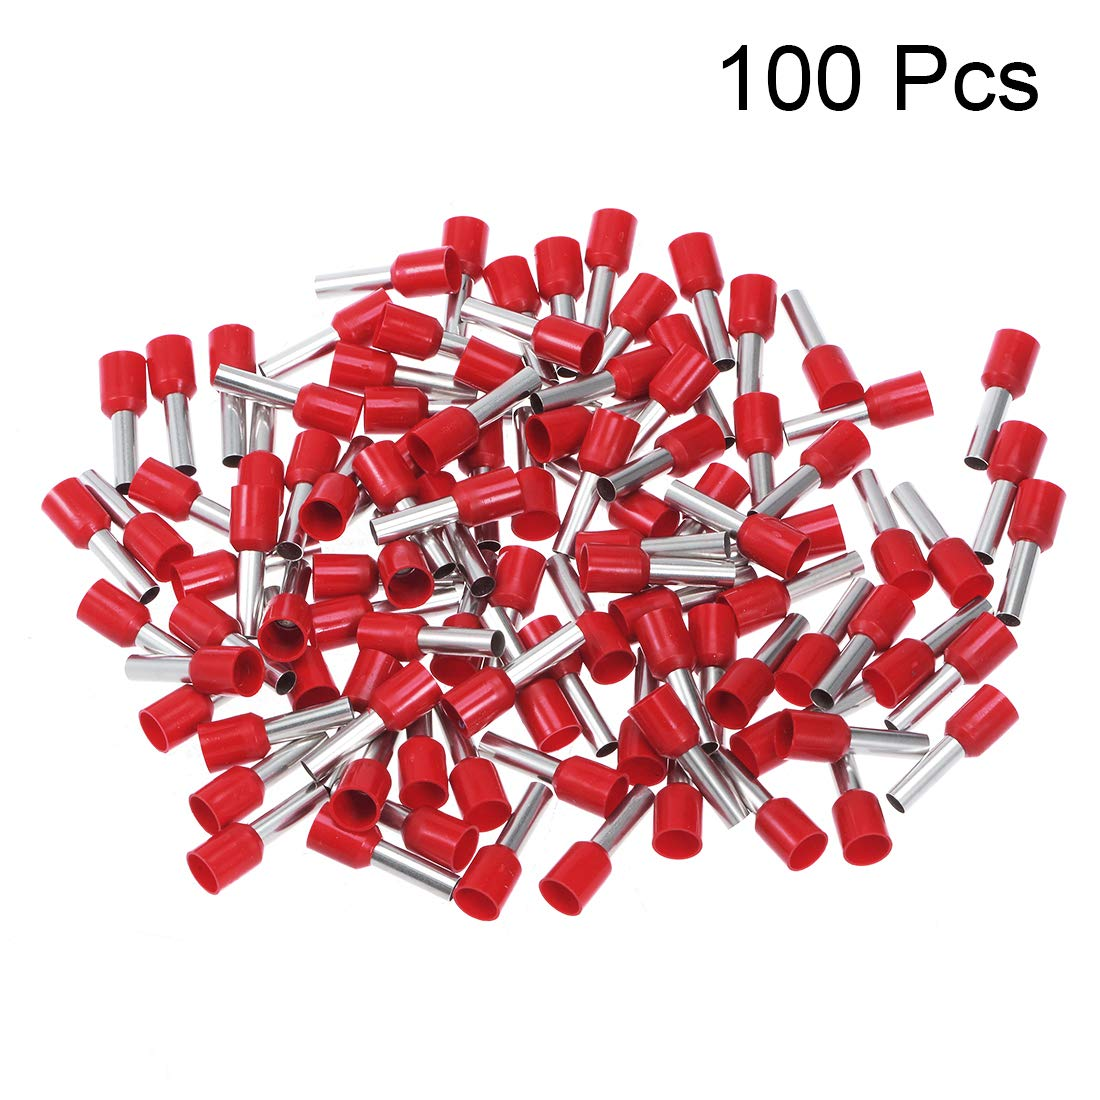 uxcell VE2510 Insulated Cord Pin End Wire Connector Electrical Crimp Terminal AWG14 Red 1000Pcs